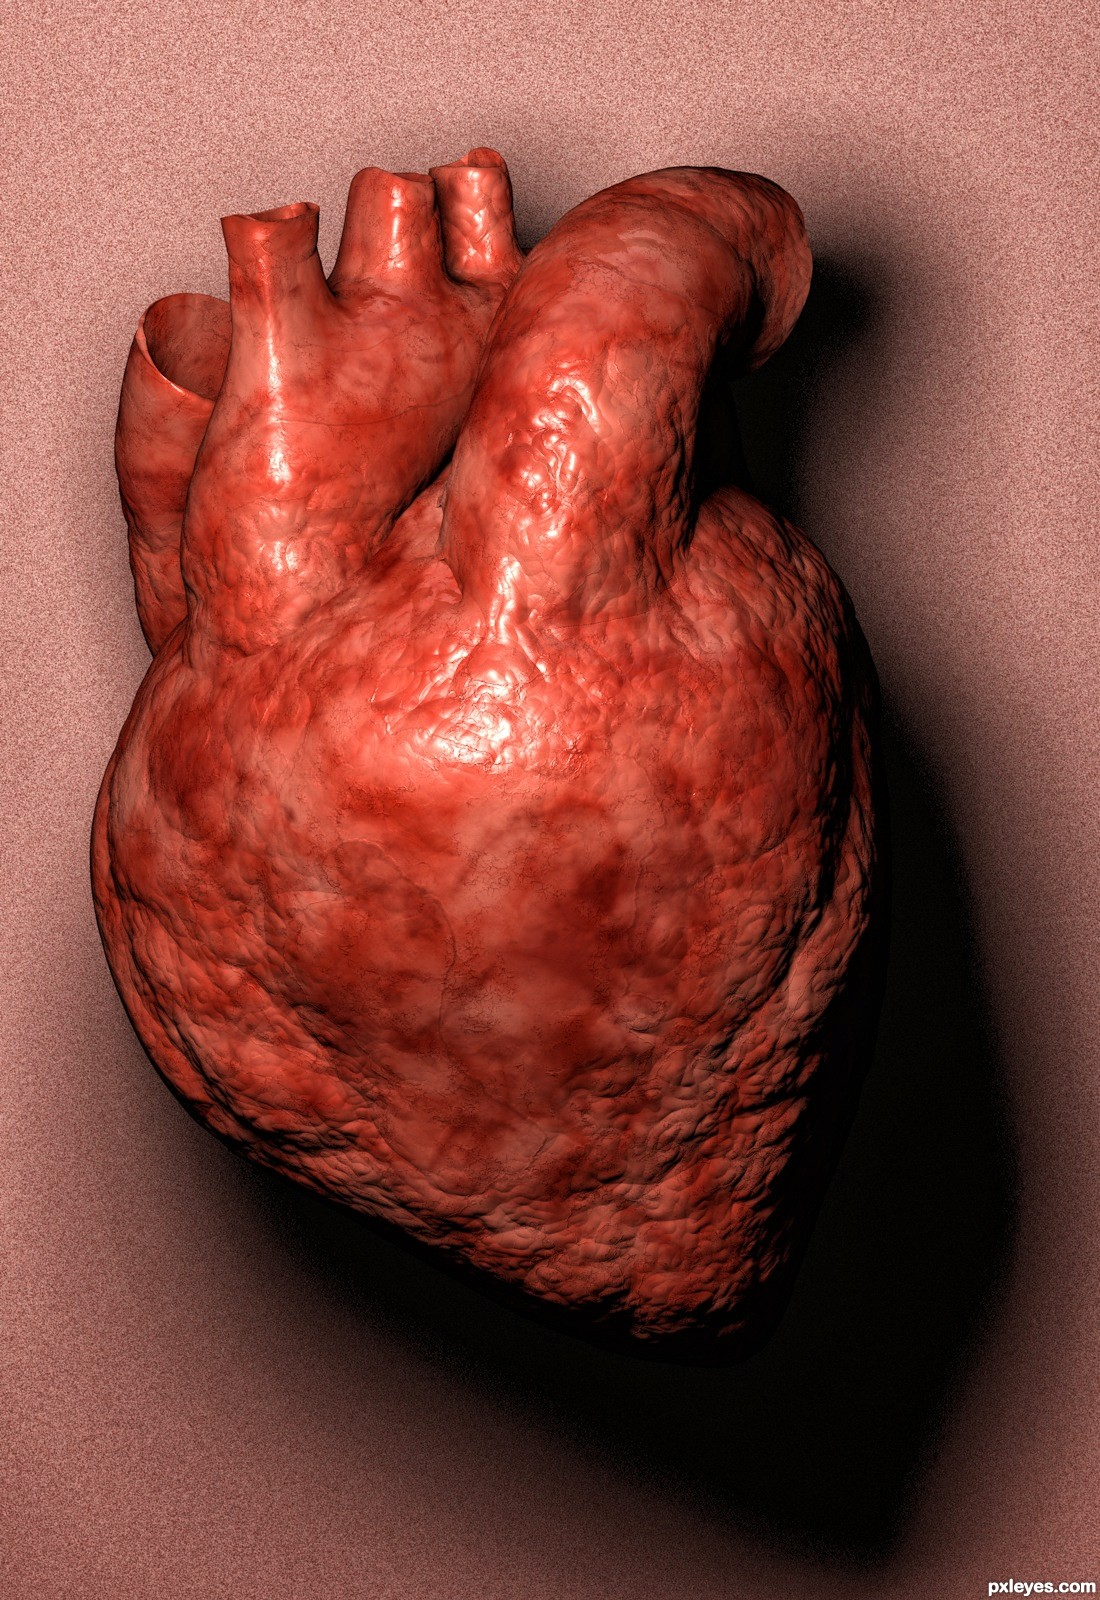 Real human heart images - photo#16